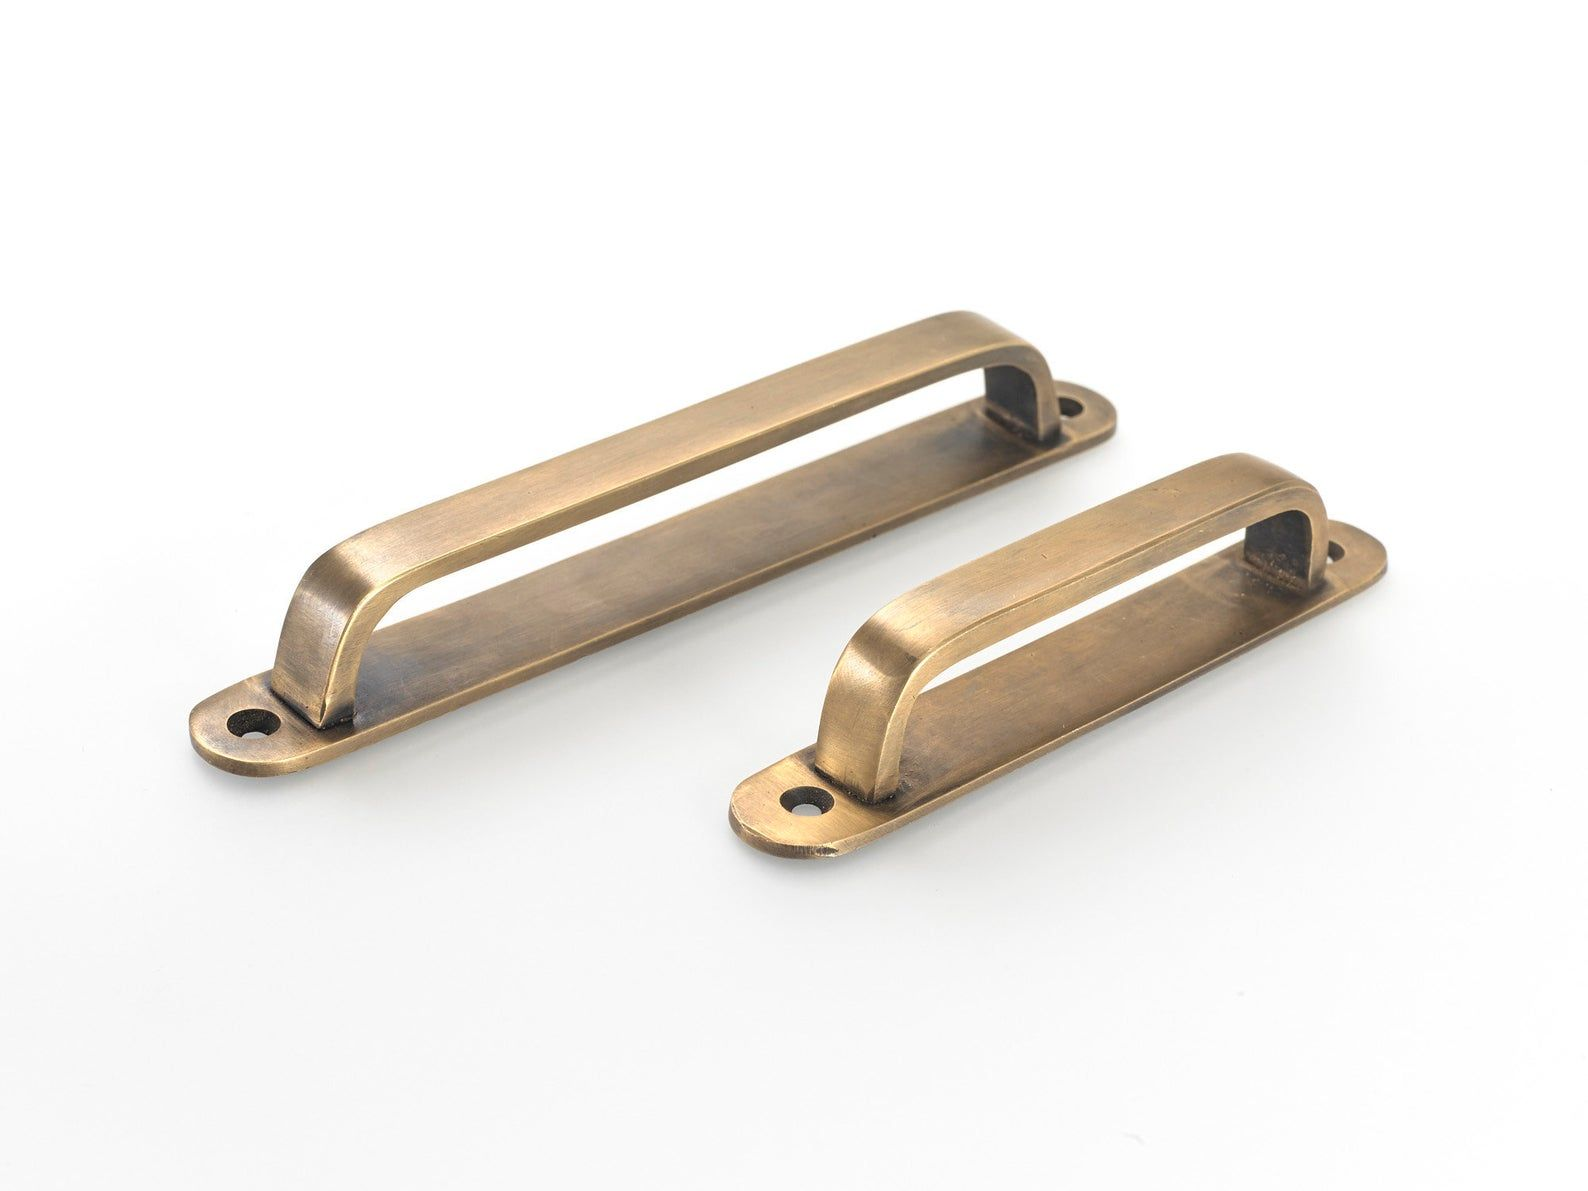 Brass Drawer Handles Backplate Drawer Pulls To Cover Existing